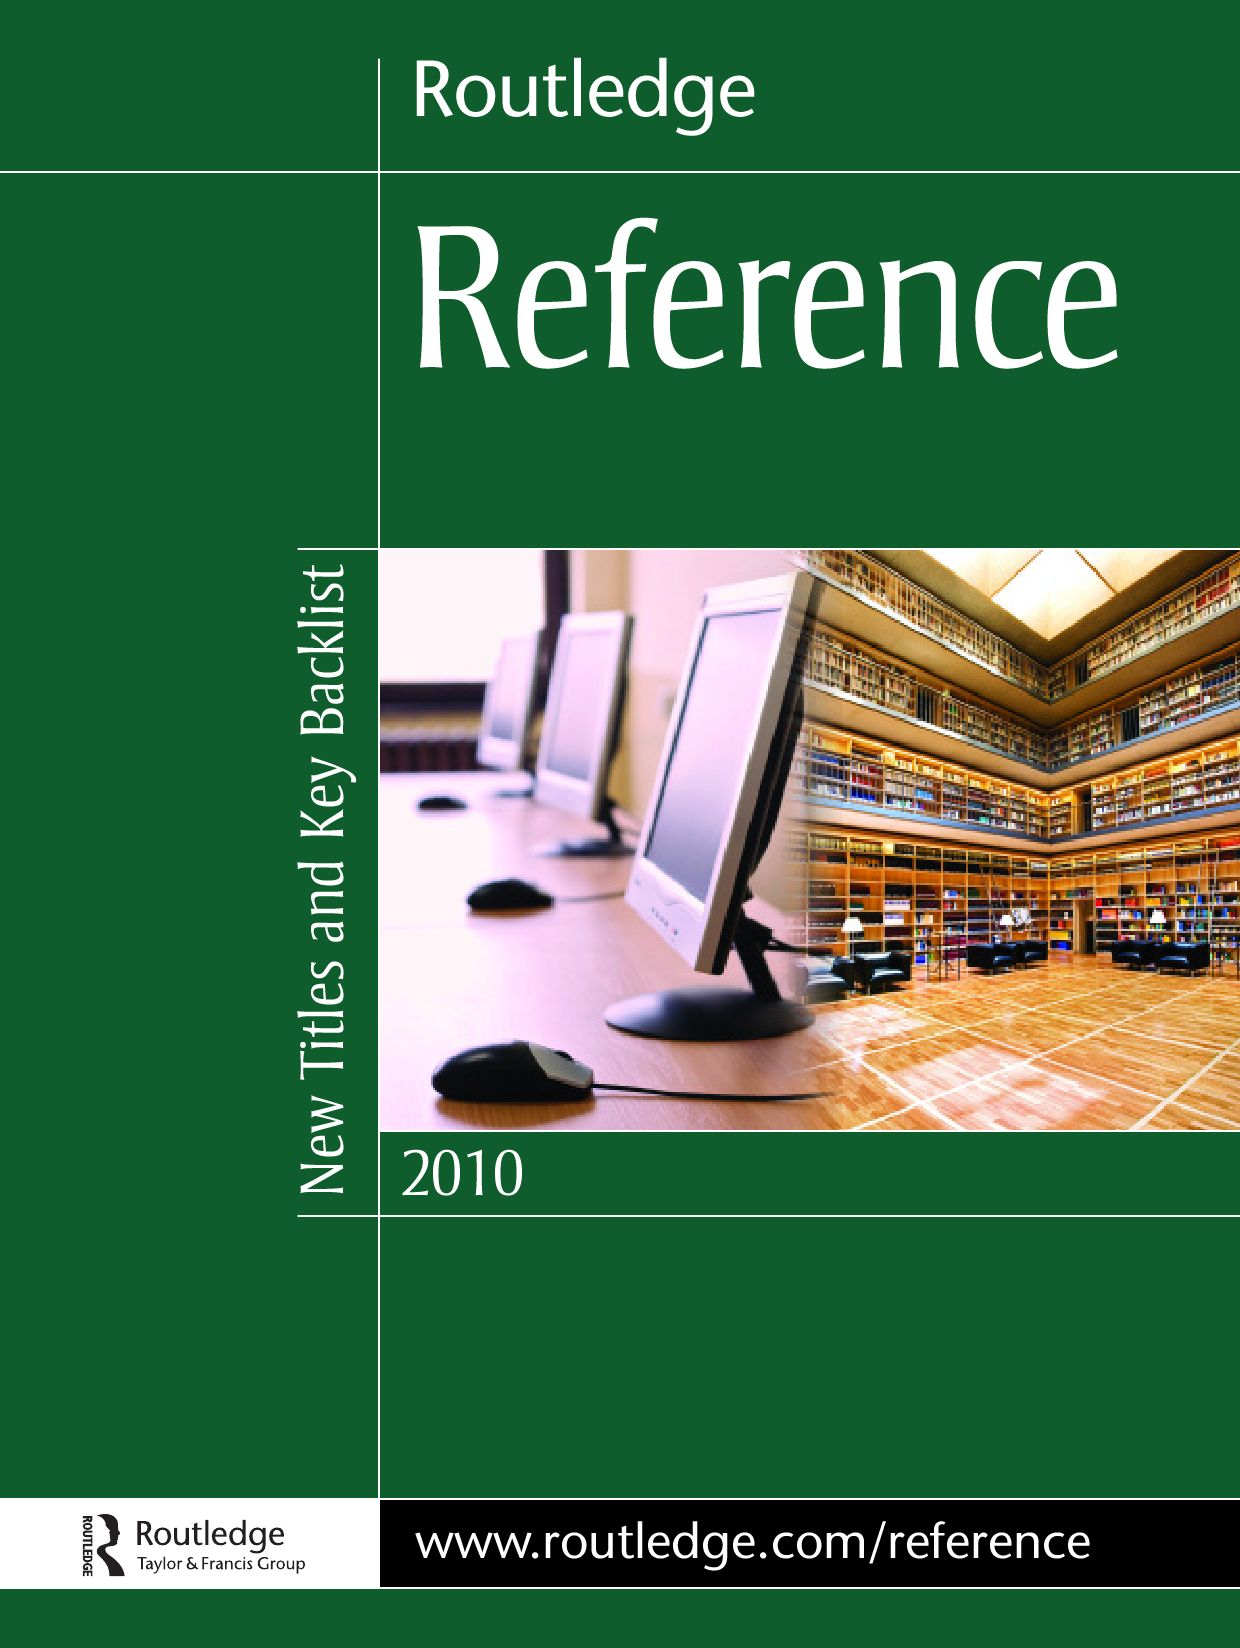 Reference 2010 (UK) by Routledge Taylor & Francis Group - issuu